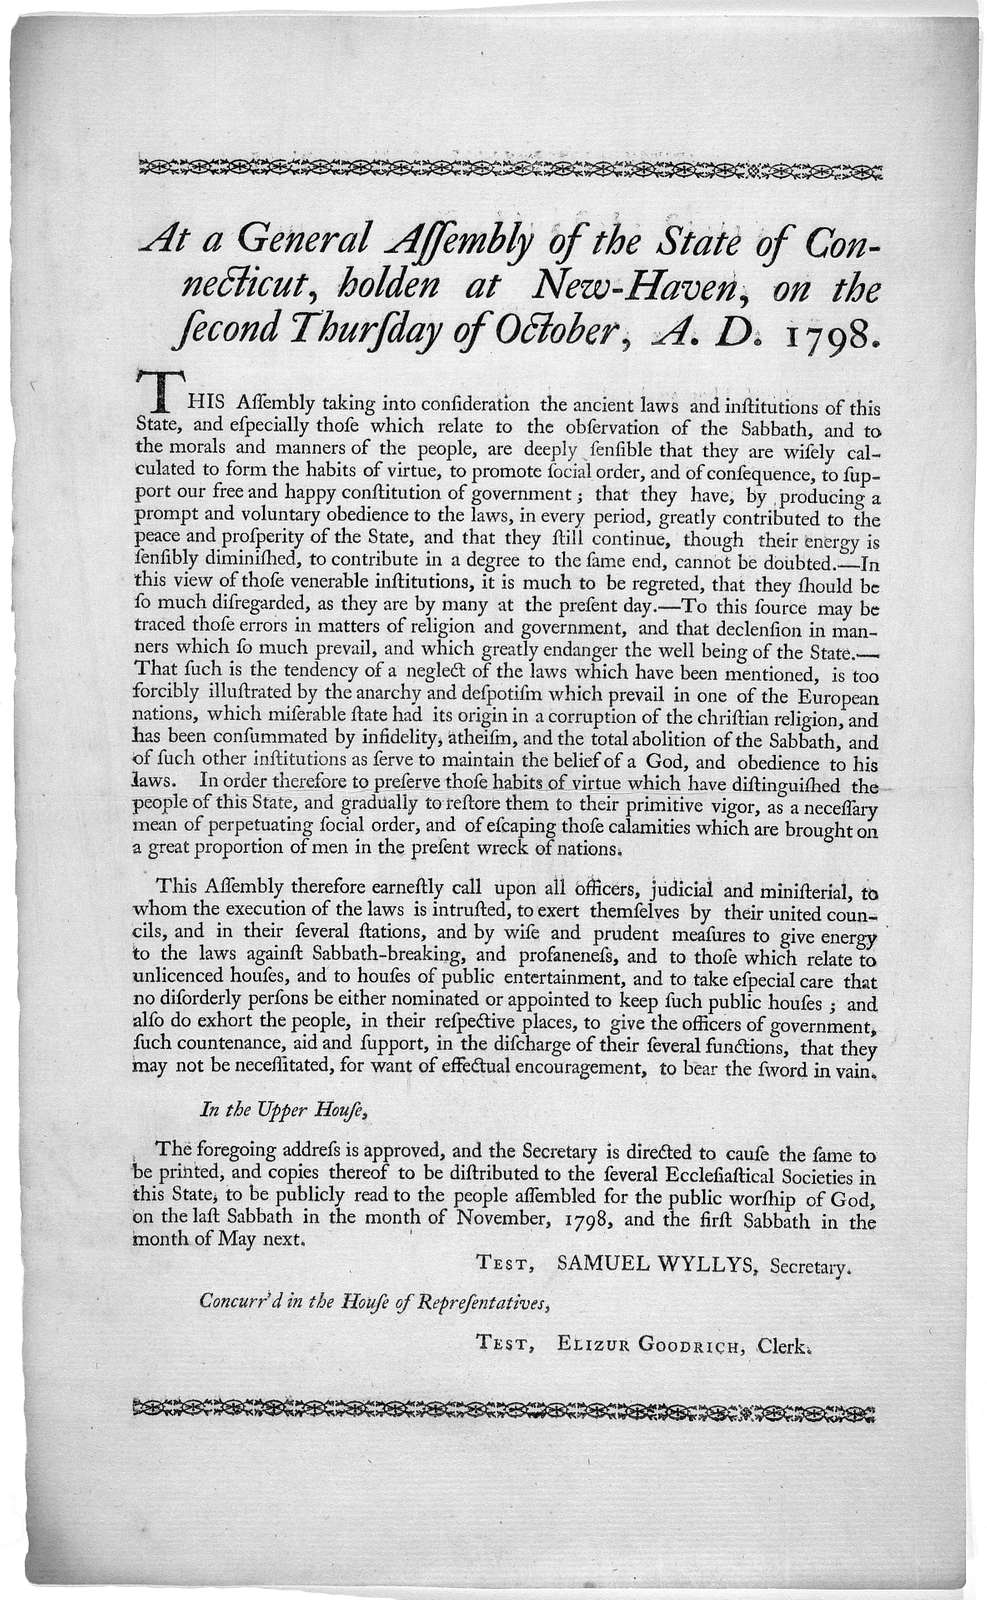 At a General Assembly of the State of Connecticut, holden at New-Haven, on the second Thursday of October A. D. 1798 [Regarding breaking of Sabbath]. [Hartford, Printed by Hudson and Goodwin 1798].